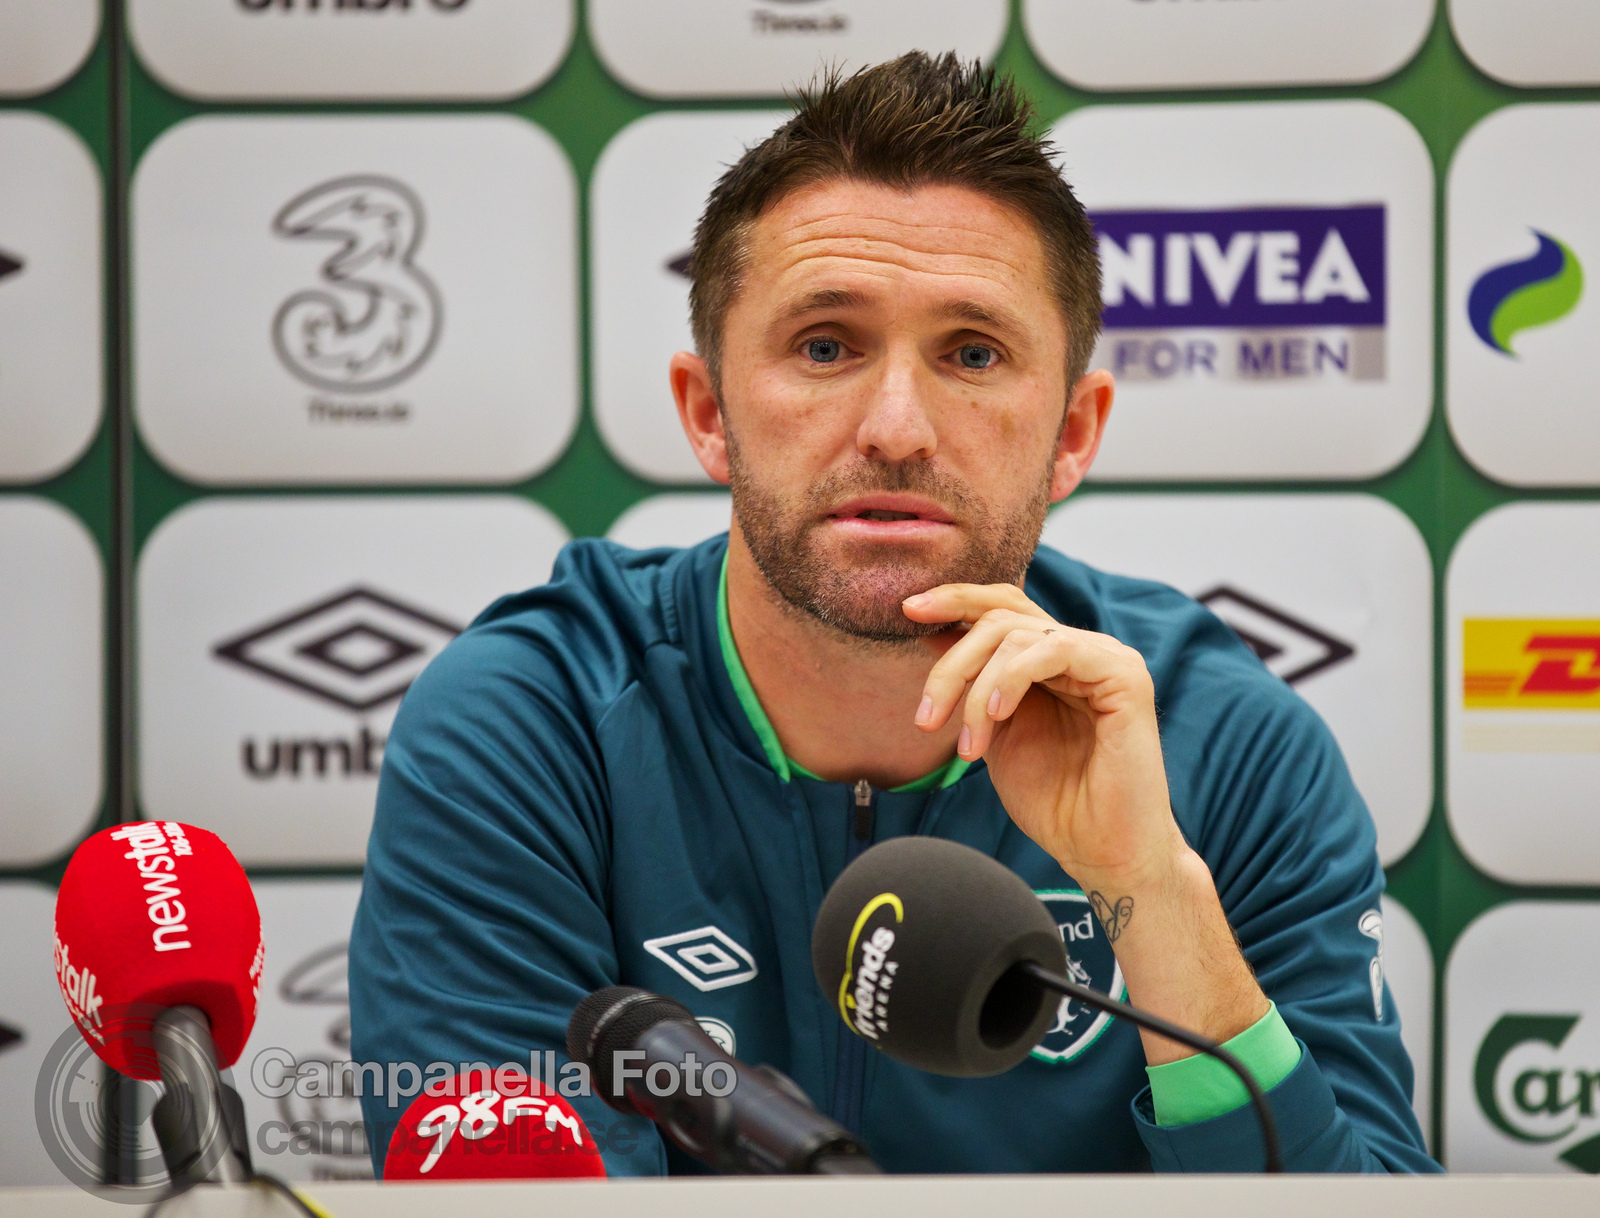 Ireland press conference - 4 of 10